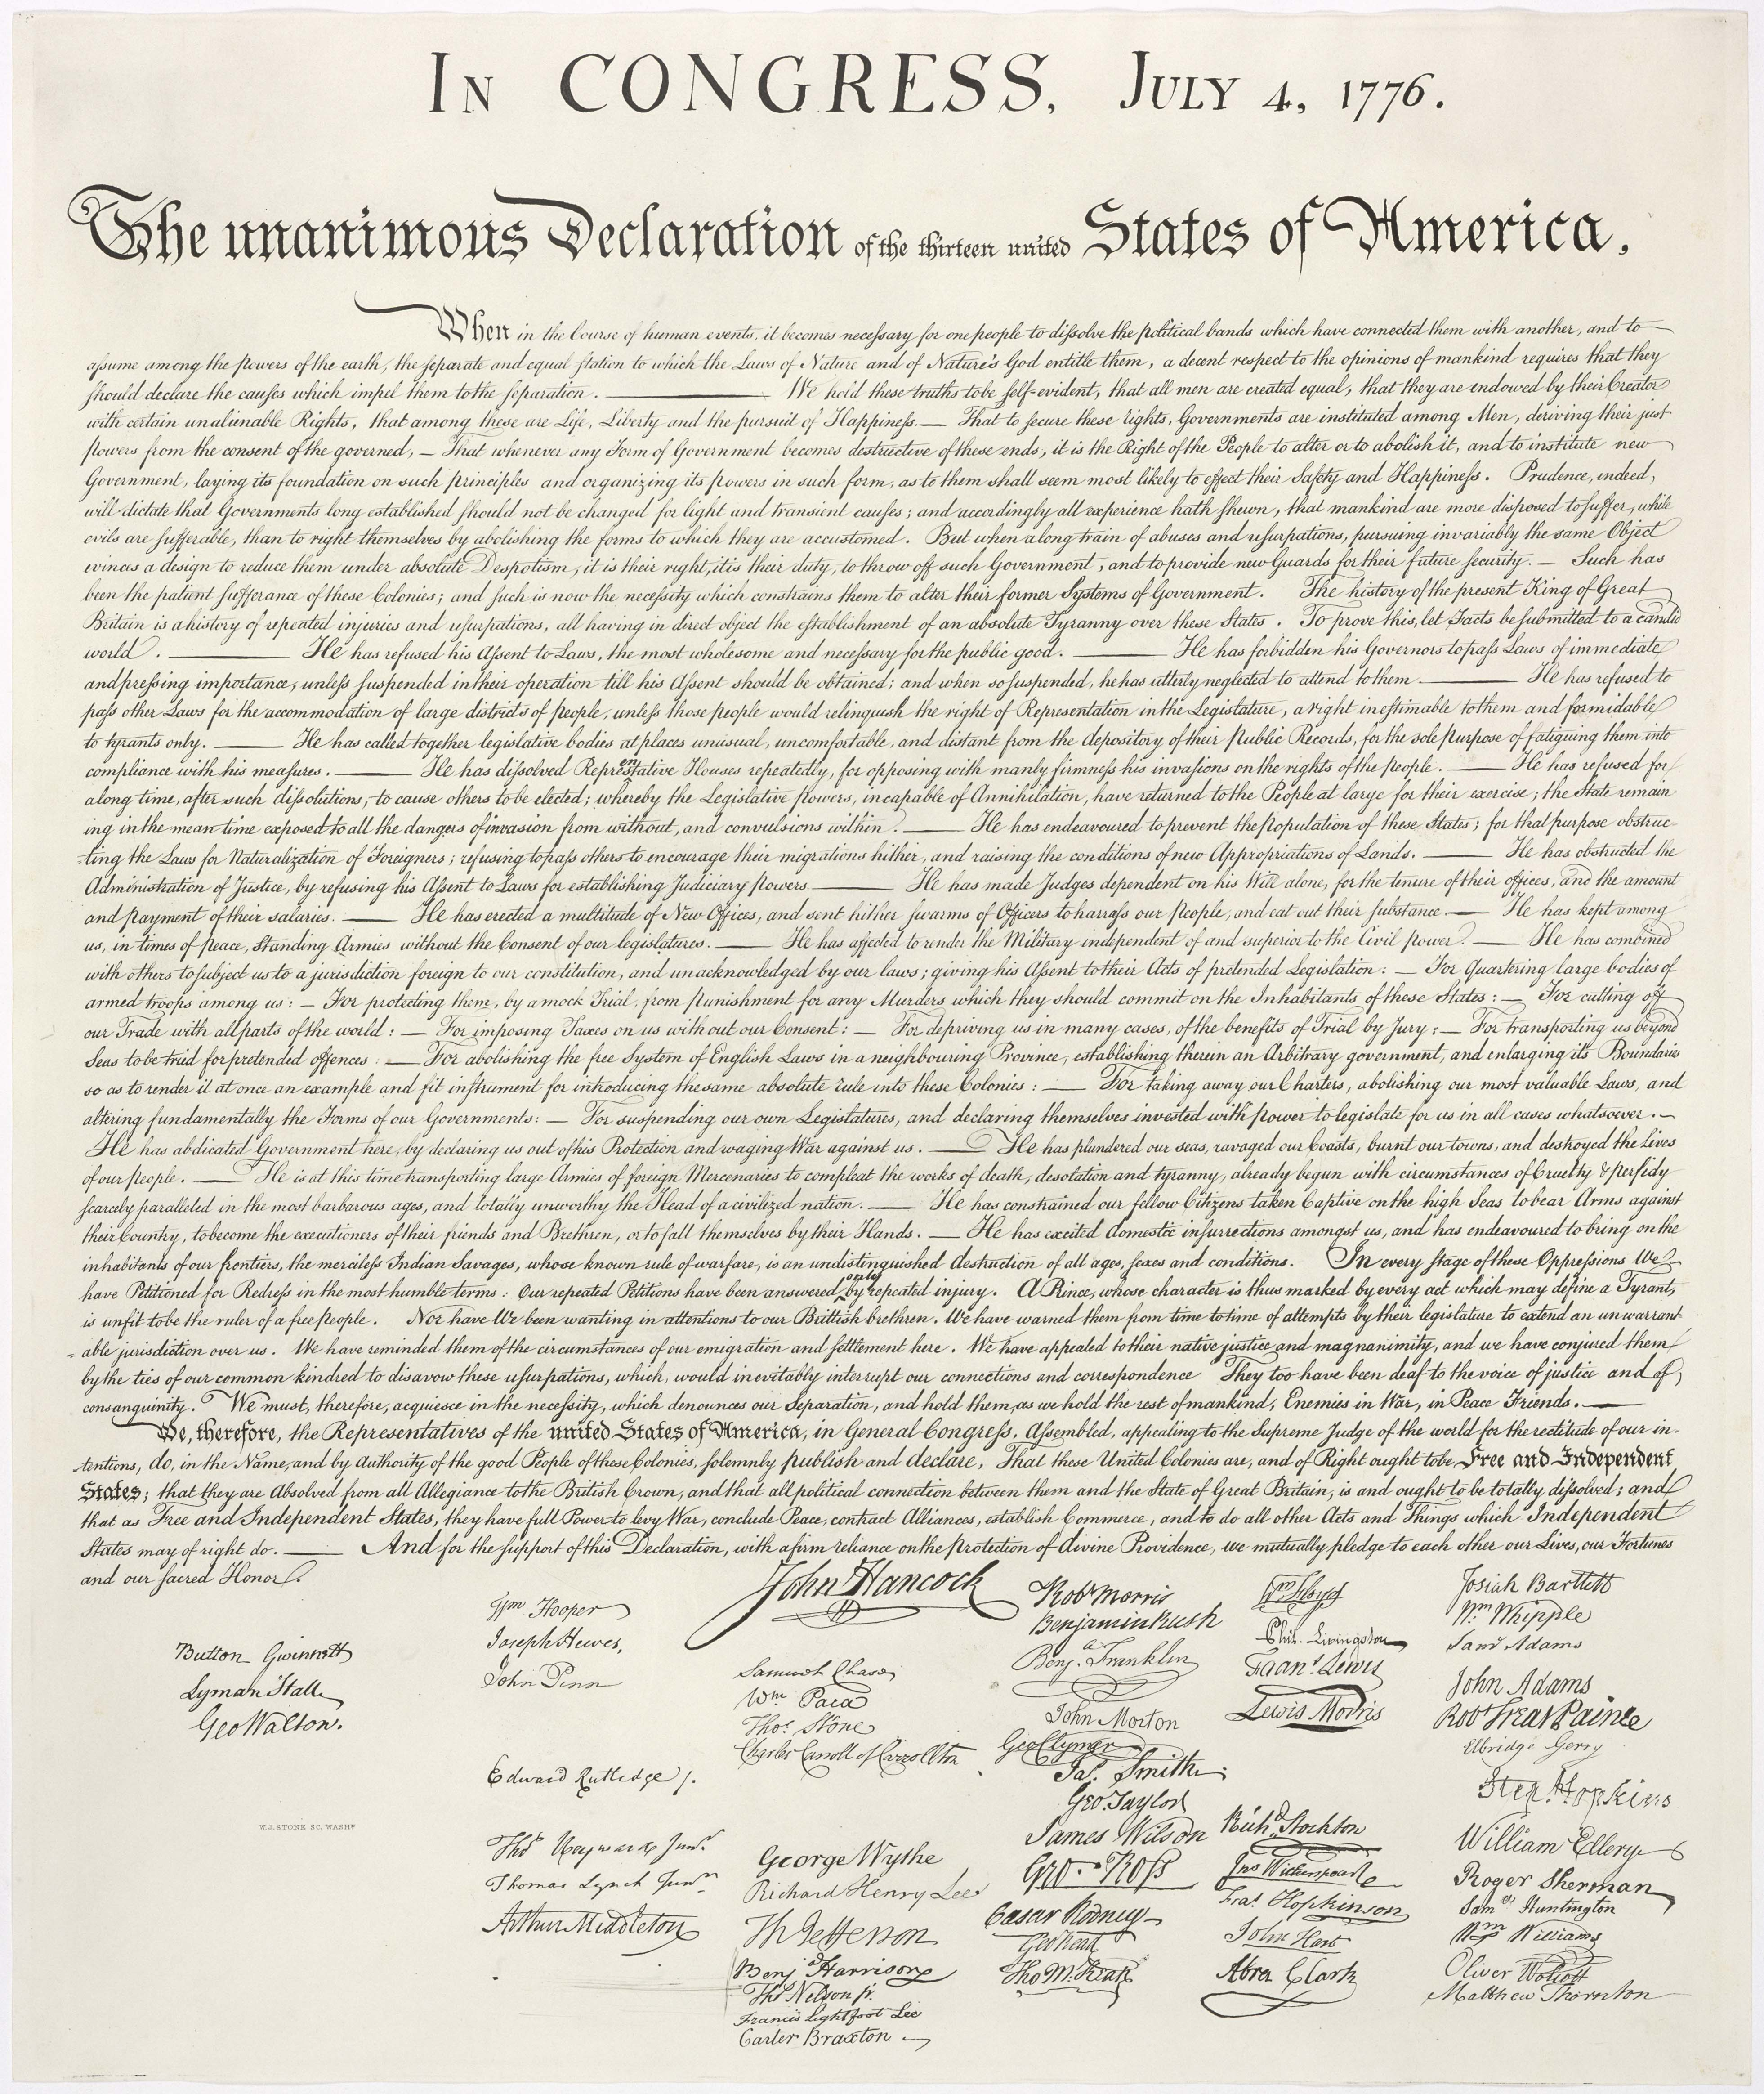 High-resolution image of the 1823 William Stone facsimile of the United States Declaration of Independence. Stone may have used a wet pressing process (that removed ink from the original document onto a contact sheet for the purpose of making the engraving.